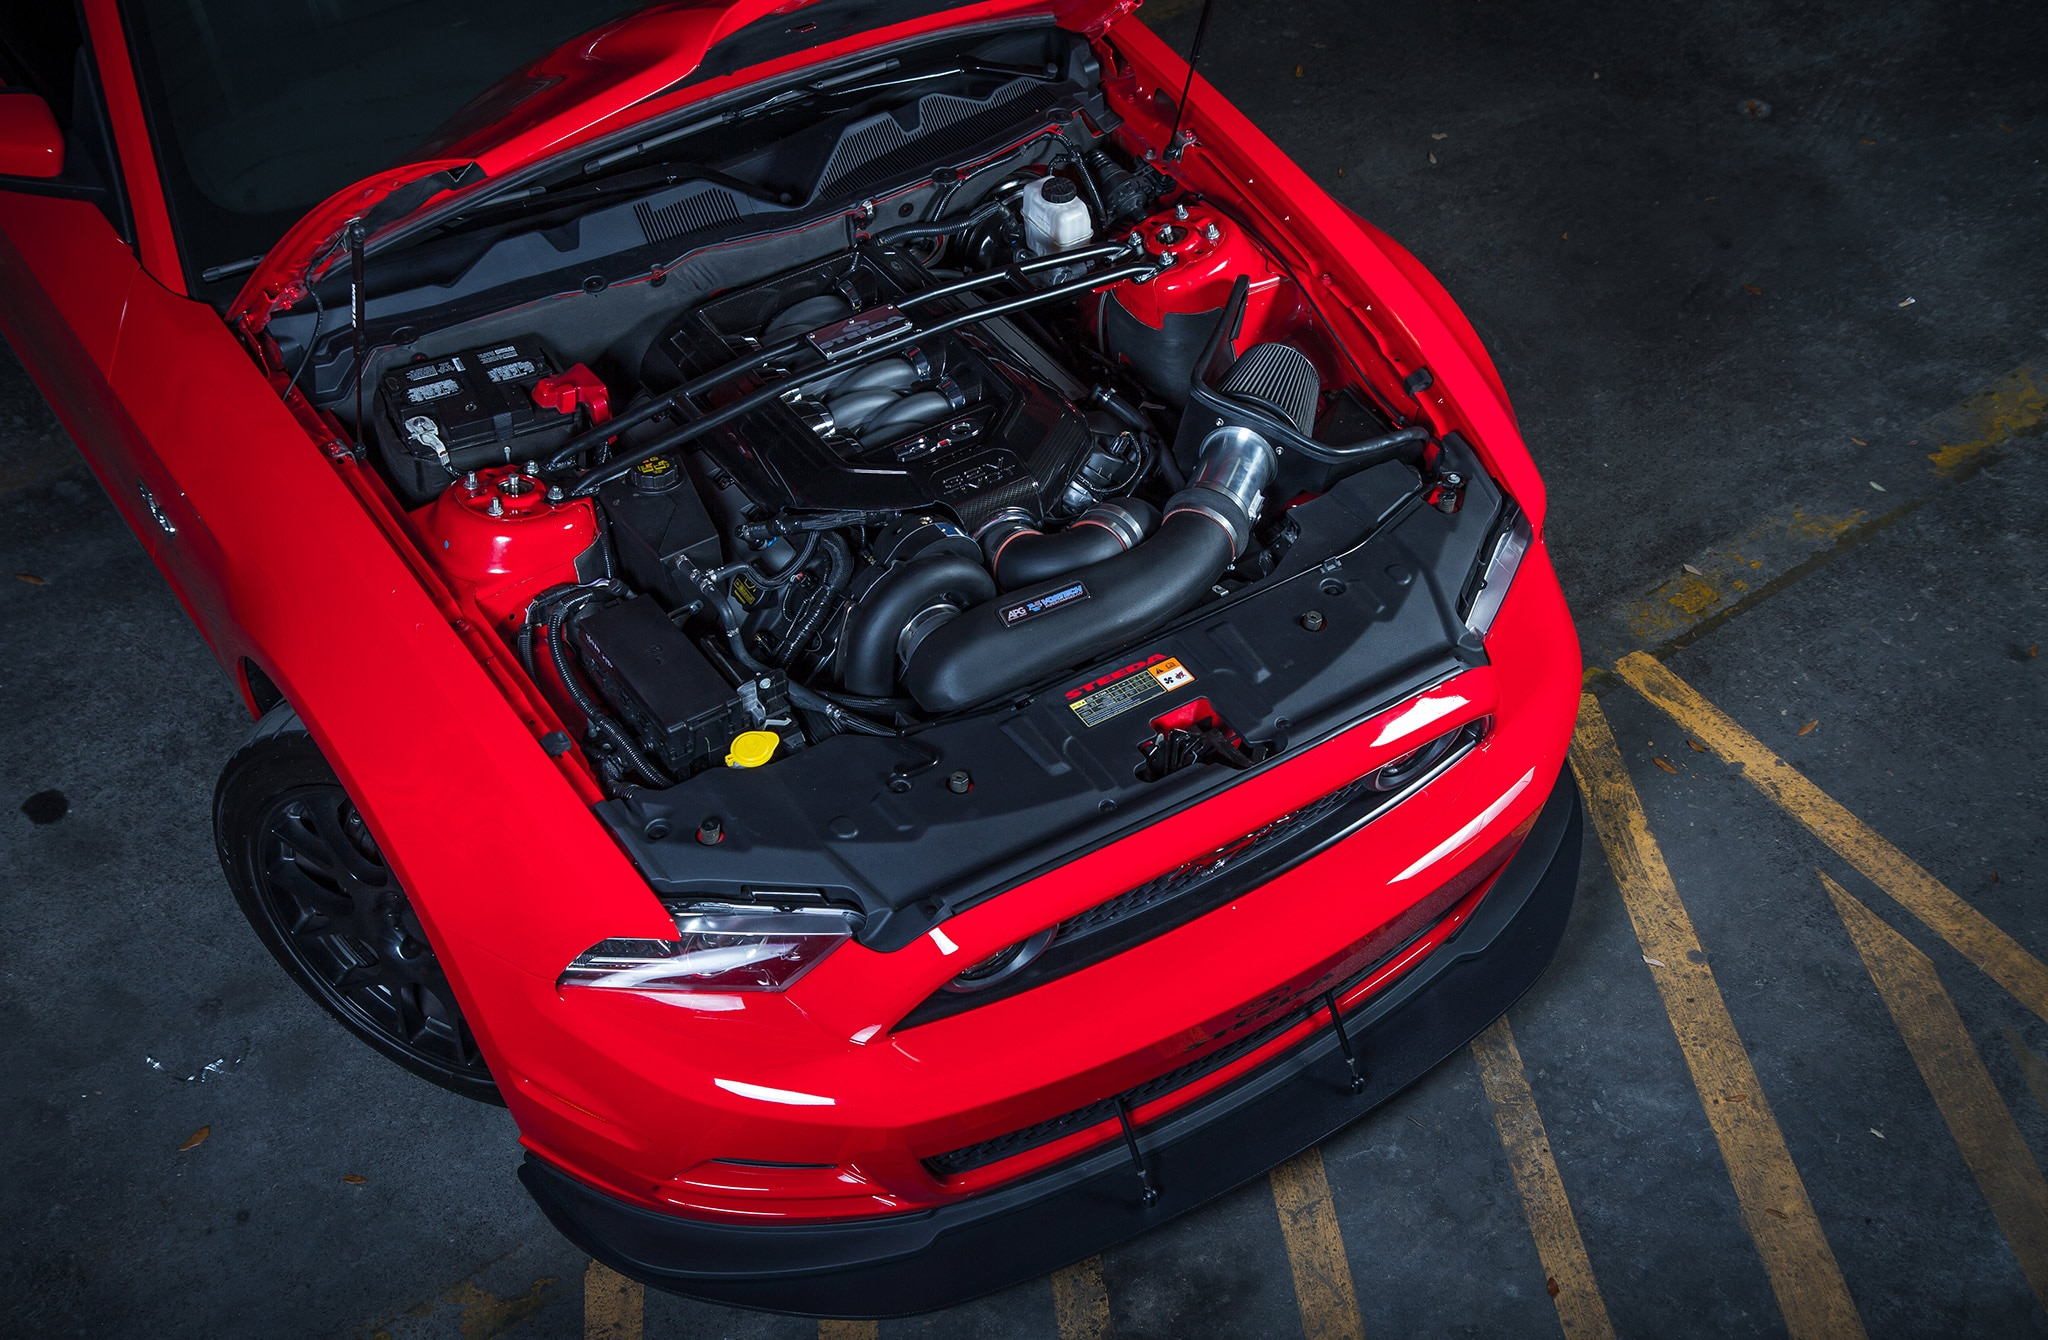 2014 Ford Mustang Steeda Red Q650 Overhead Engine